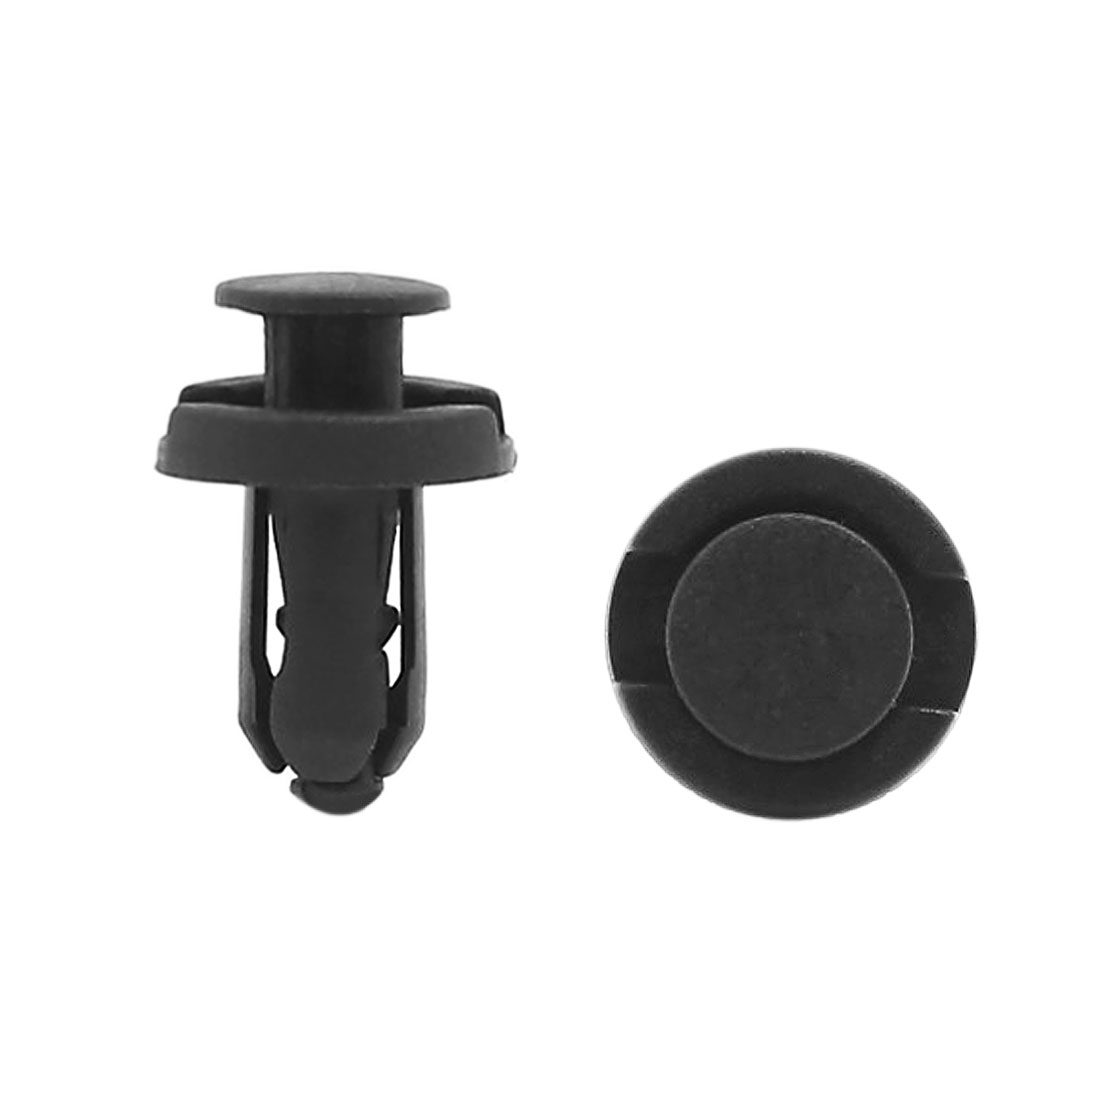 20 Pcs Black Plastic Door Screw Rivet Carpet Mat Clips Fits for 10mm Dia Hole